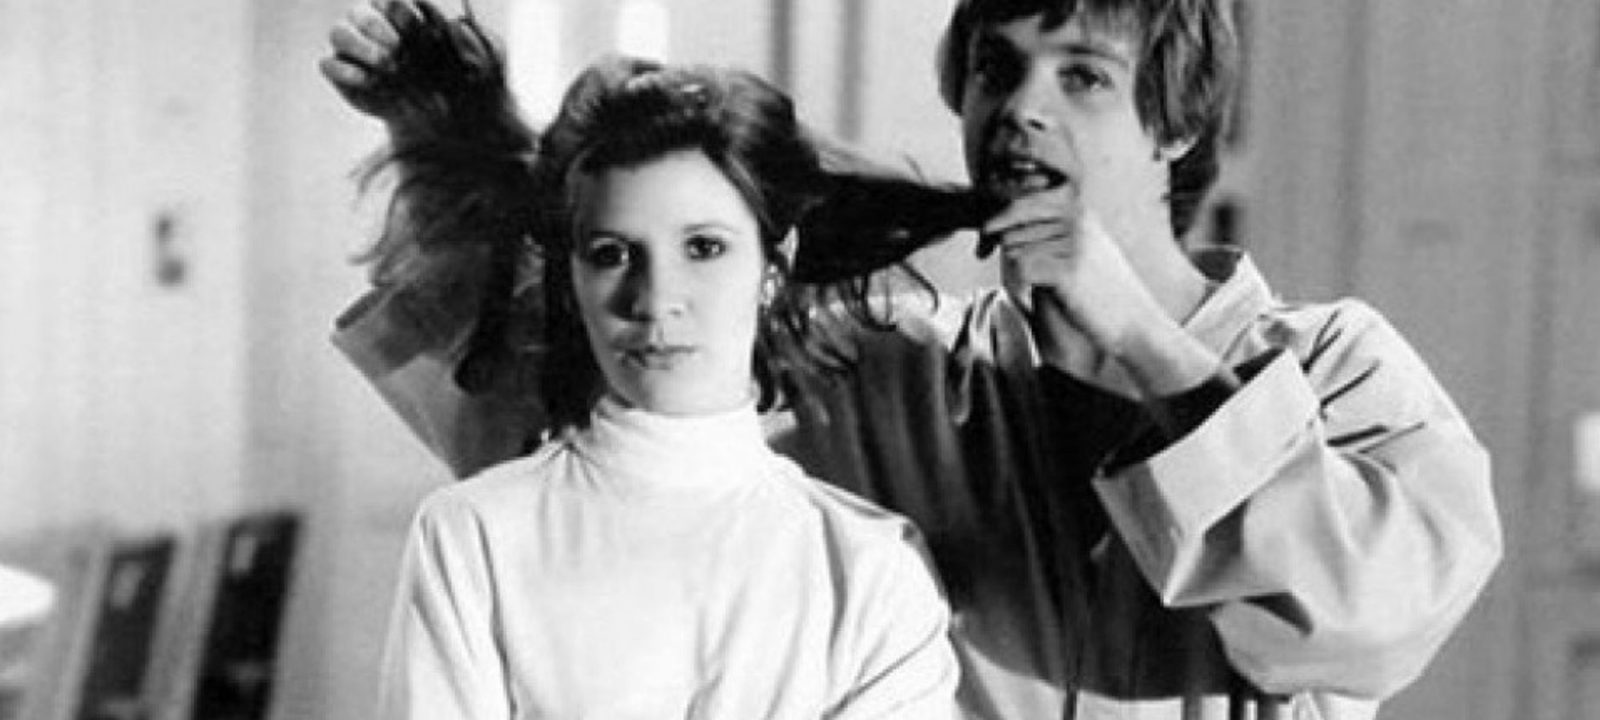 Carrie Fisher and Mark Hamill in 'Star Wars'